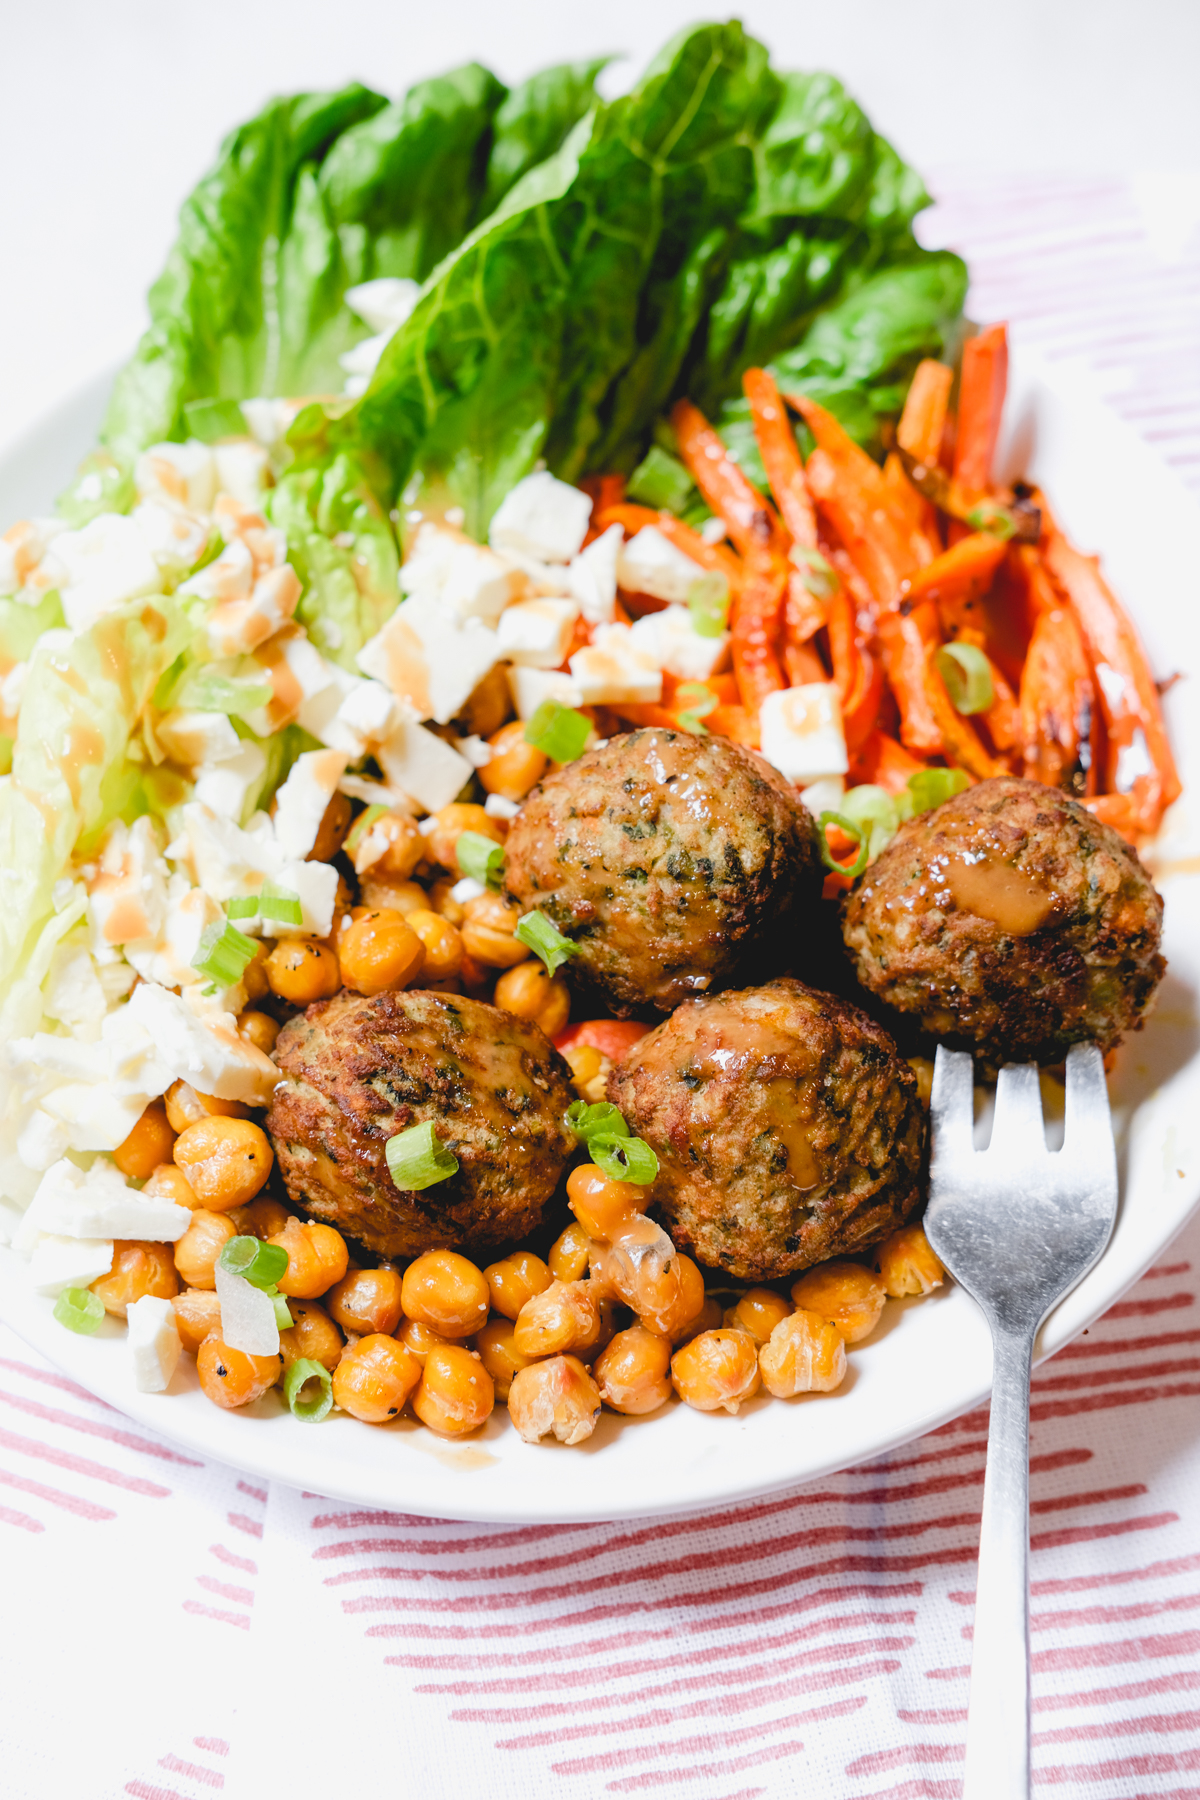 meatball and chickpeas in a salad with carrots, lettuce, and feta cheese